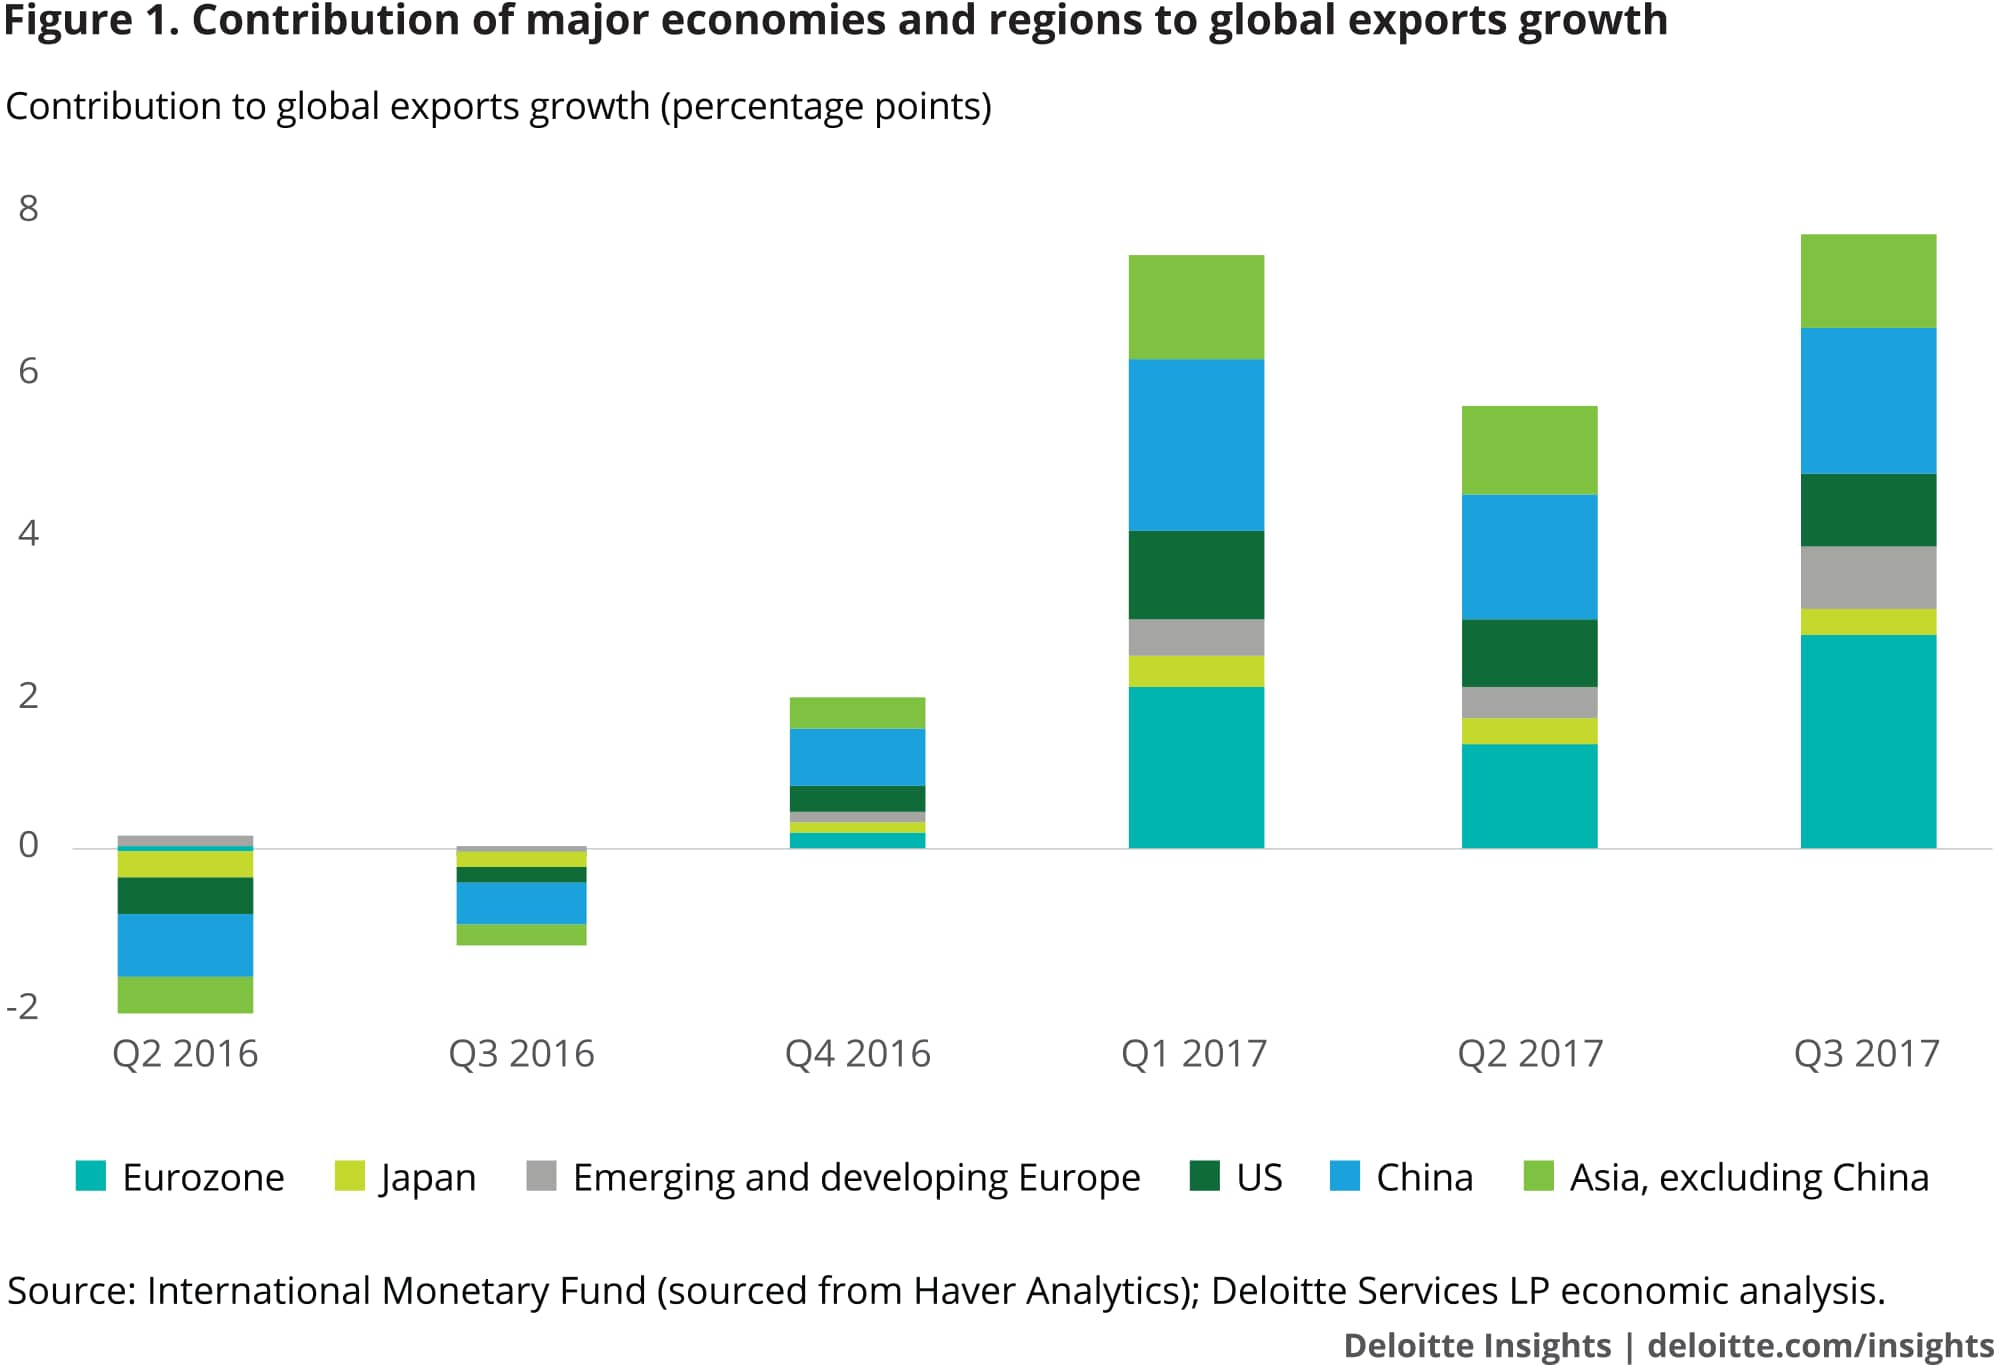 Contribution of major economies and regions to global exports growth